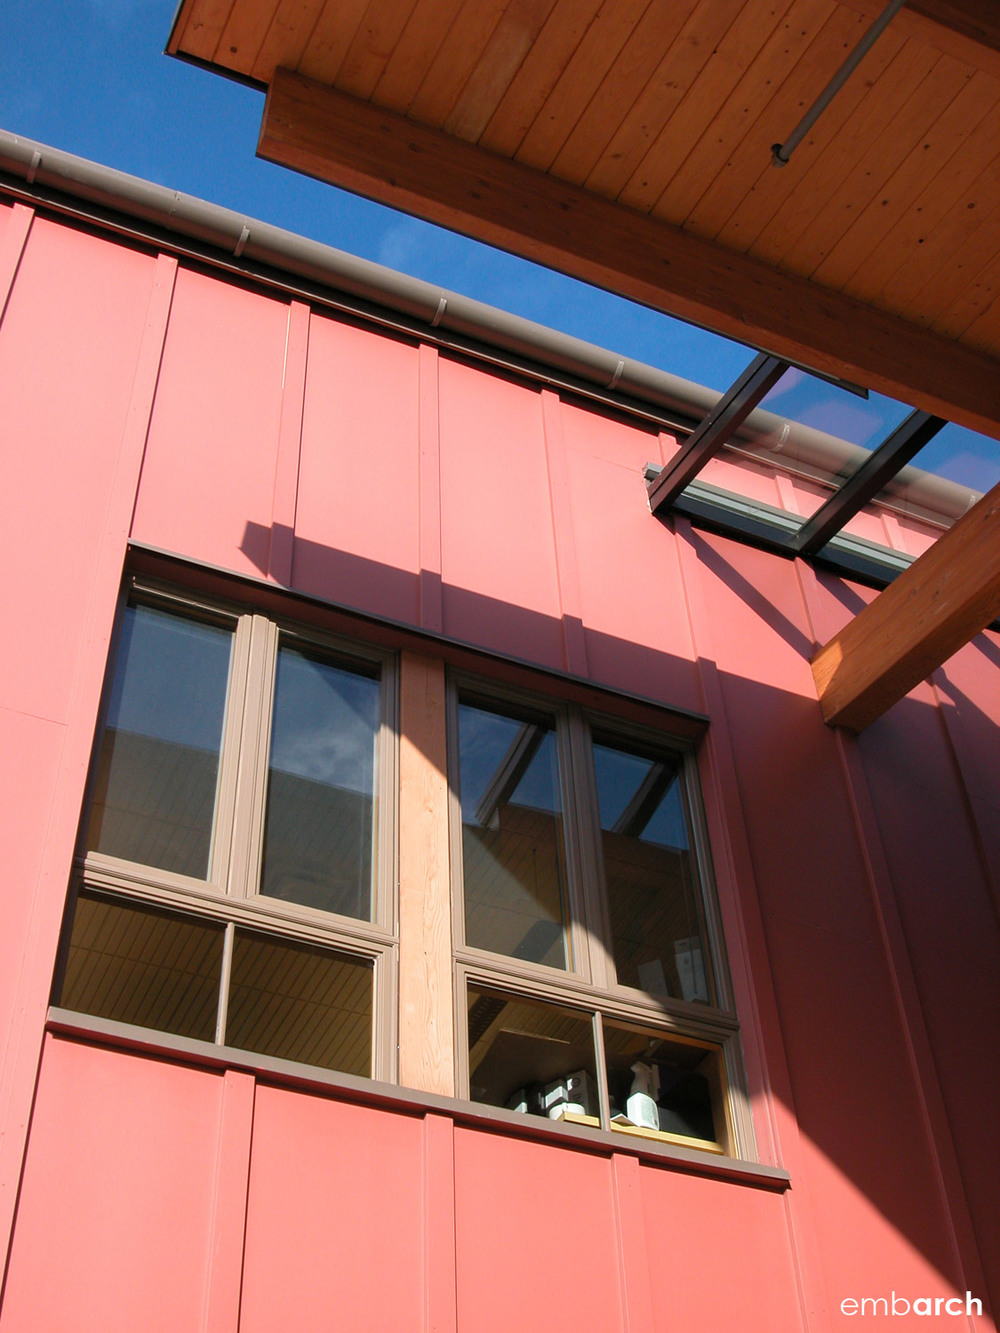 Bainbridge Island City Hall - exterior detail